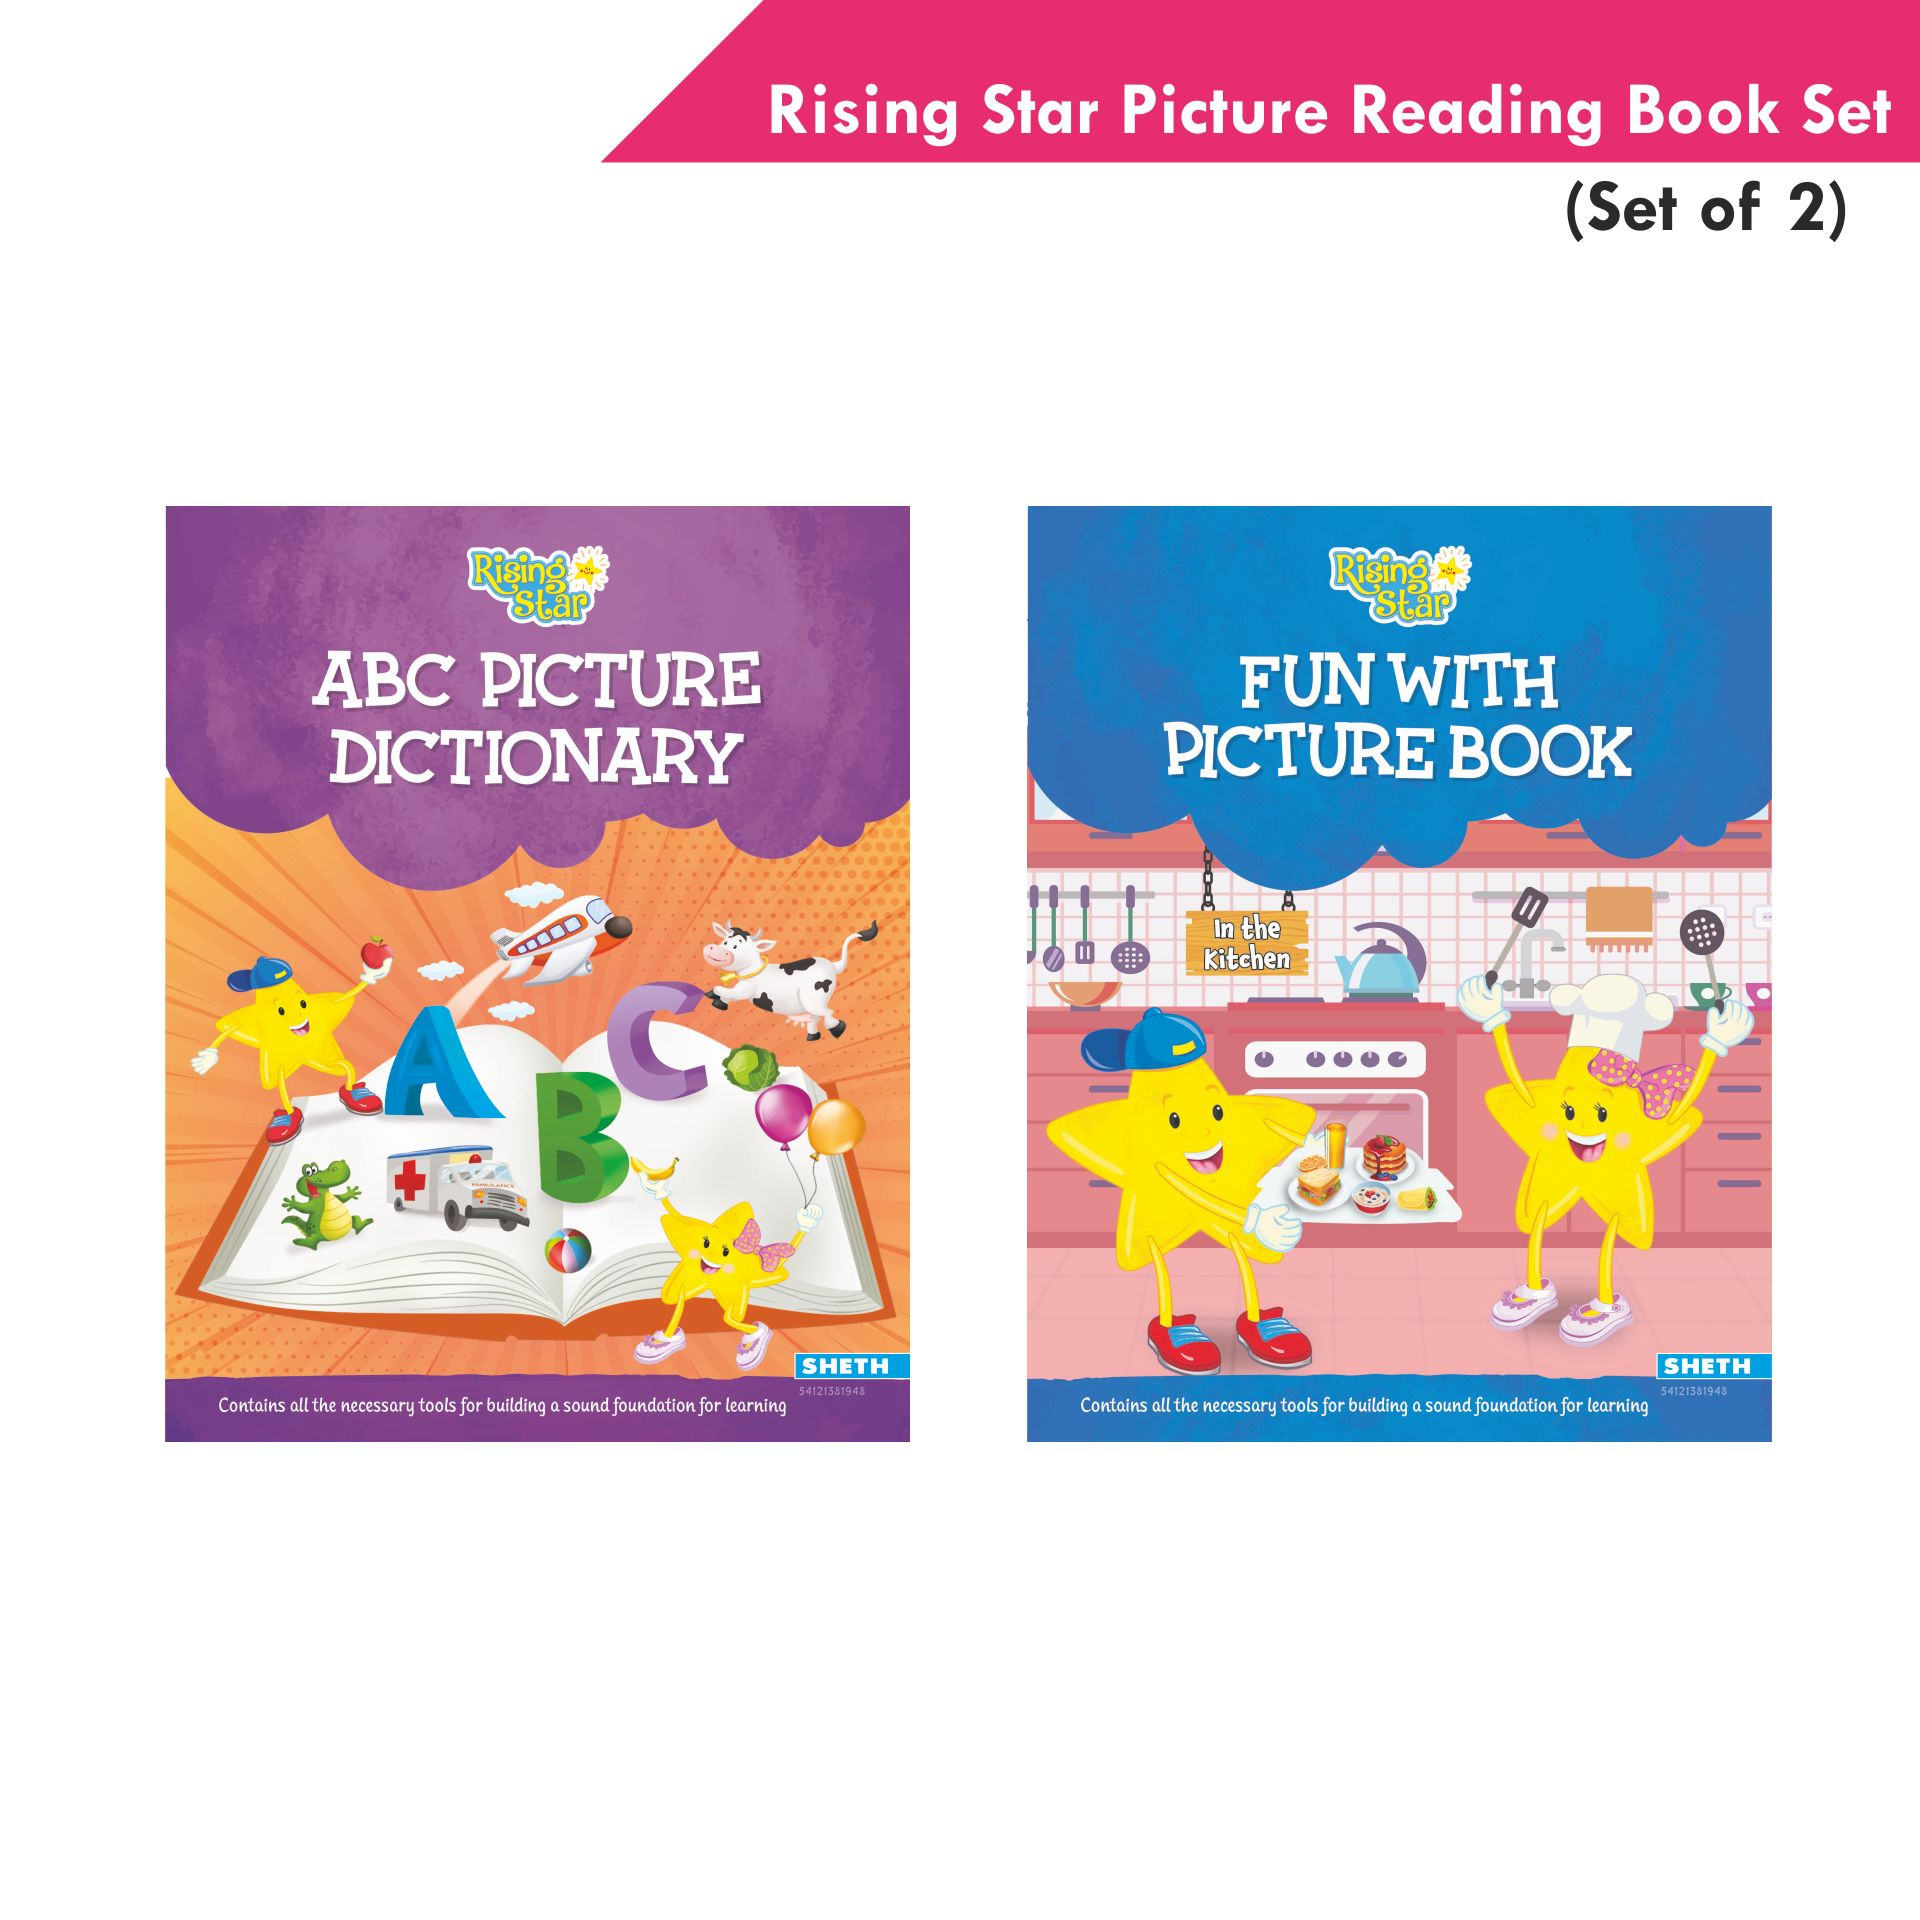 Rising Star Picture Reading Book Set Set of 2 1